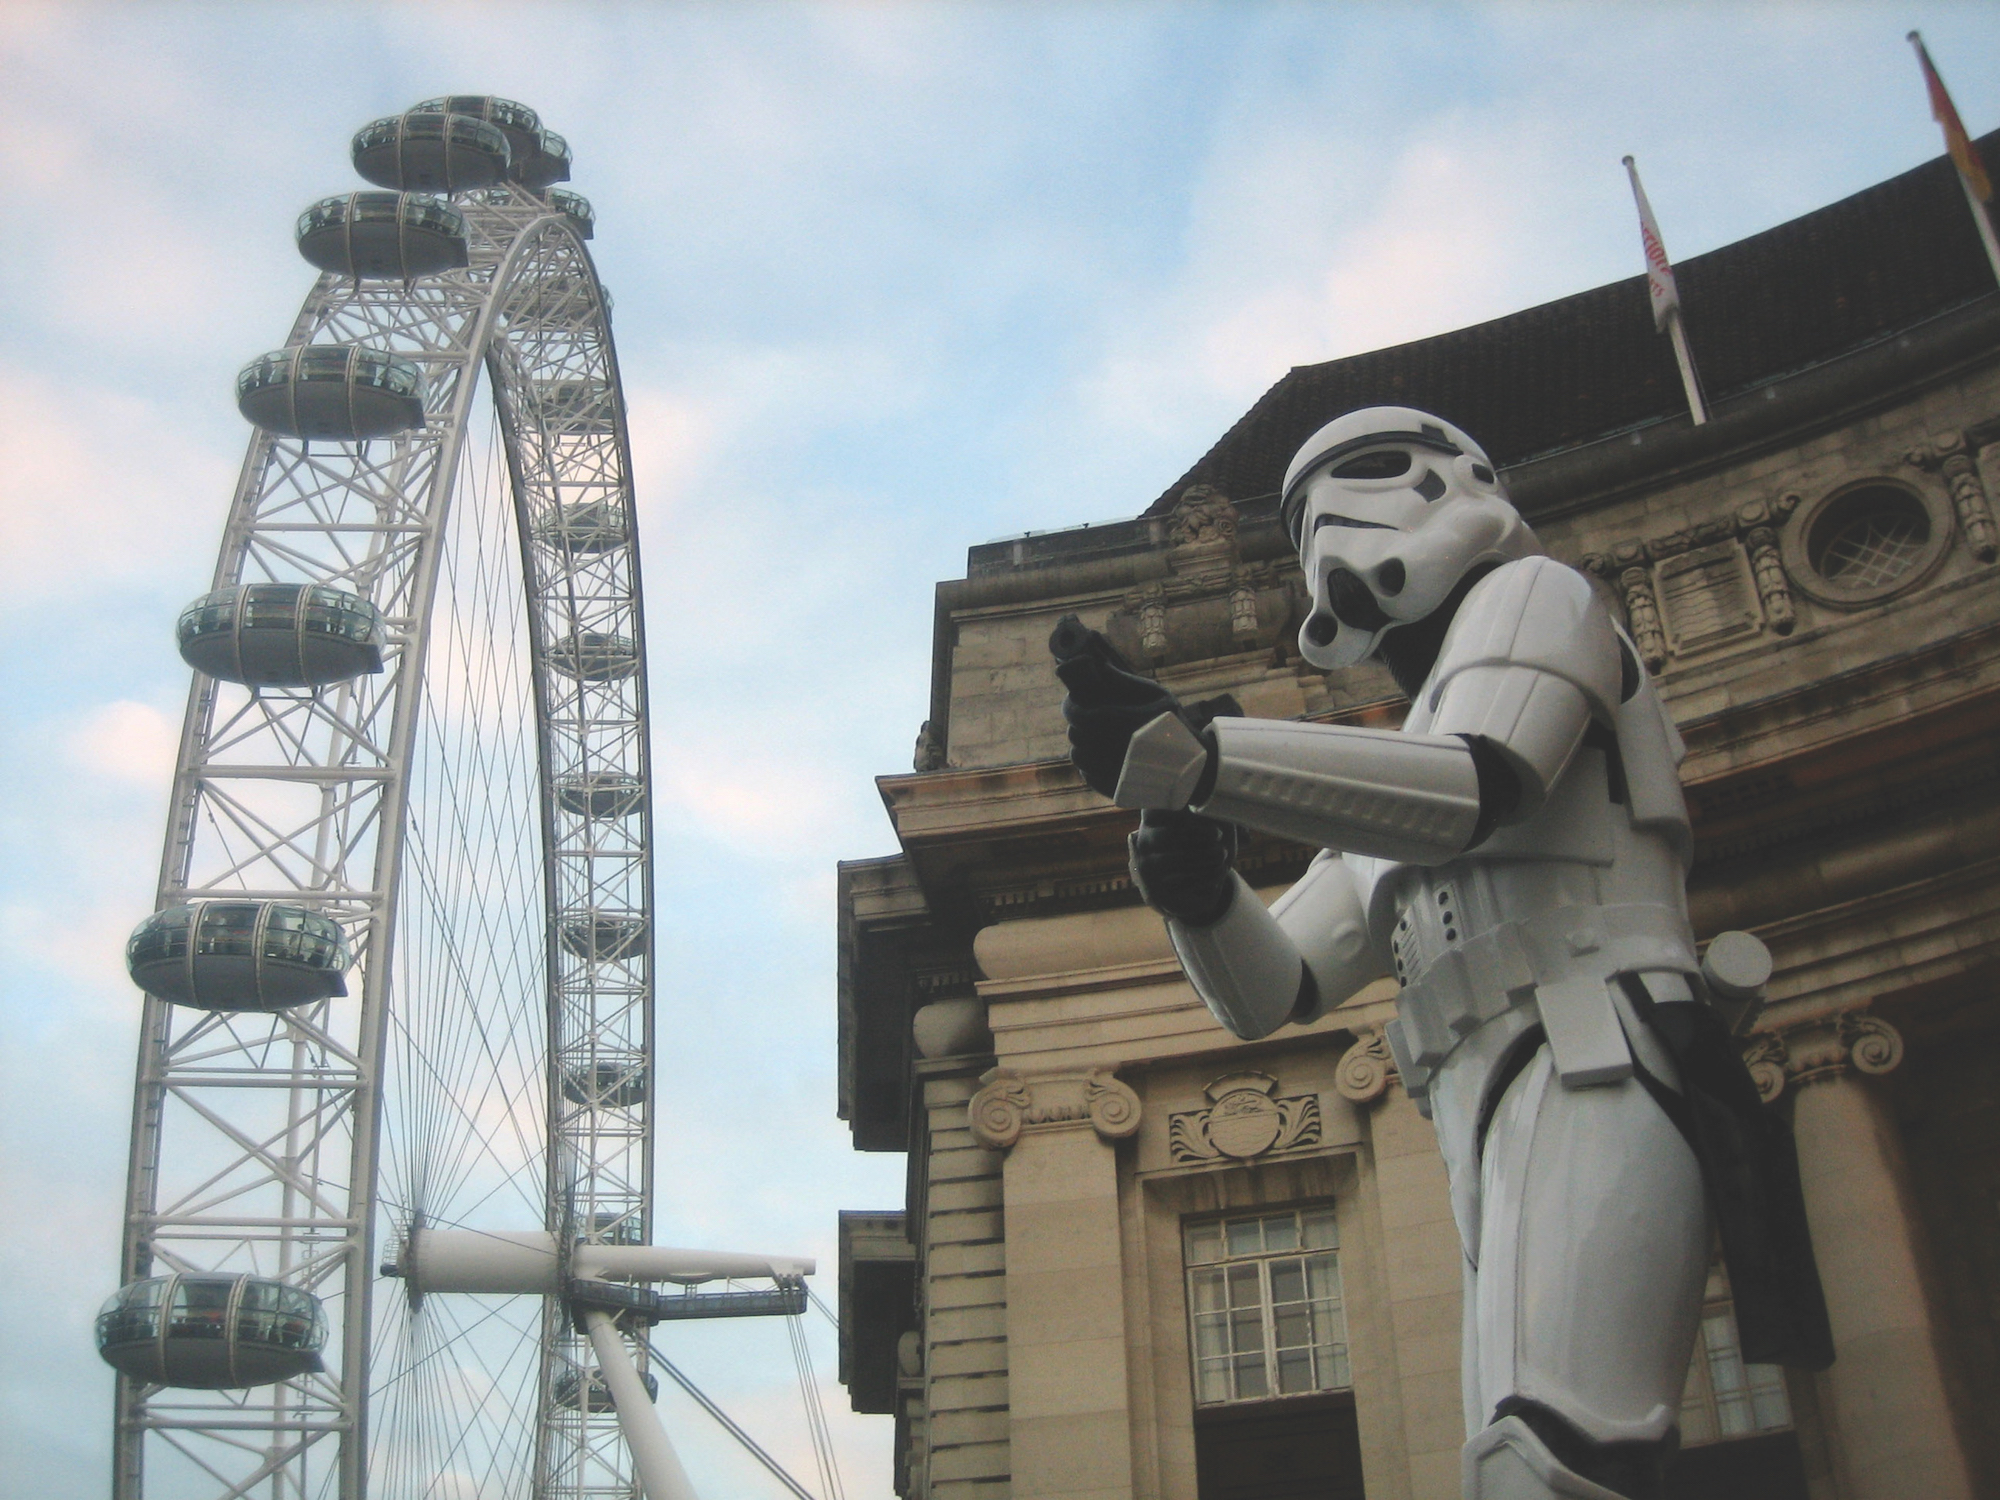 Everything You Ever Wanted To Know About Stormtroopers VICE - Artist uses banned books to create monumental sculpture against political oppression